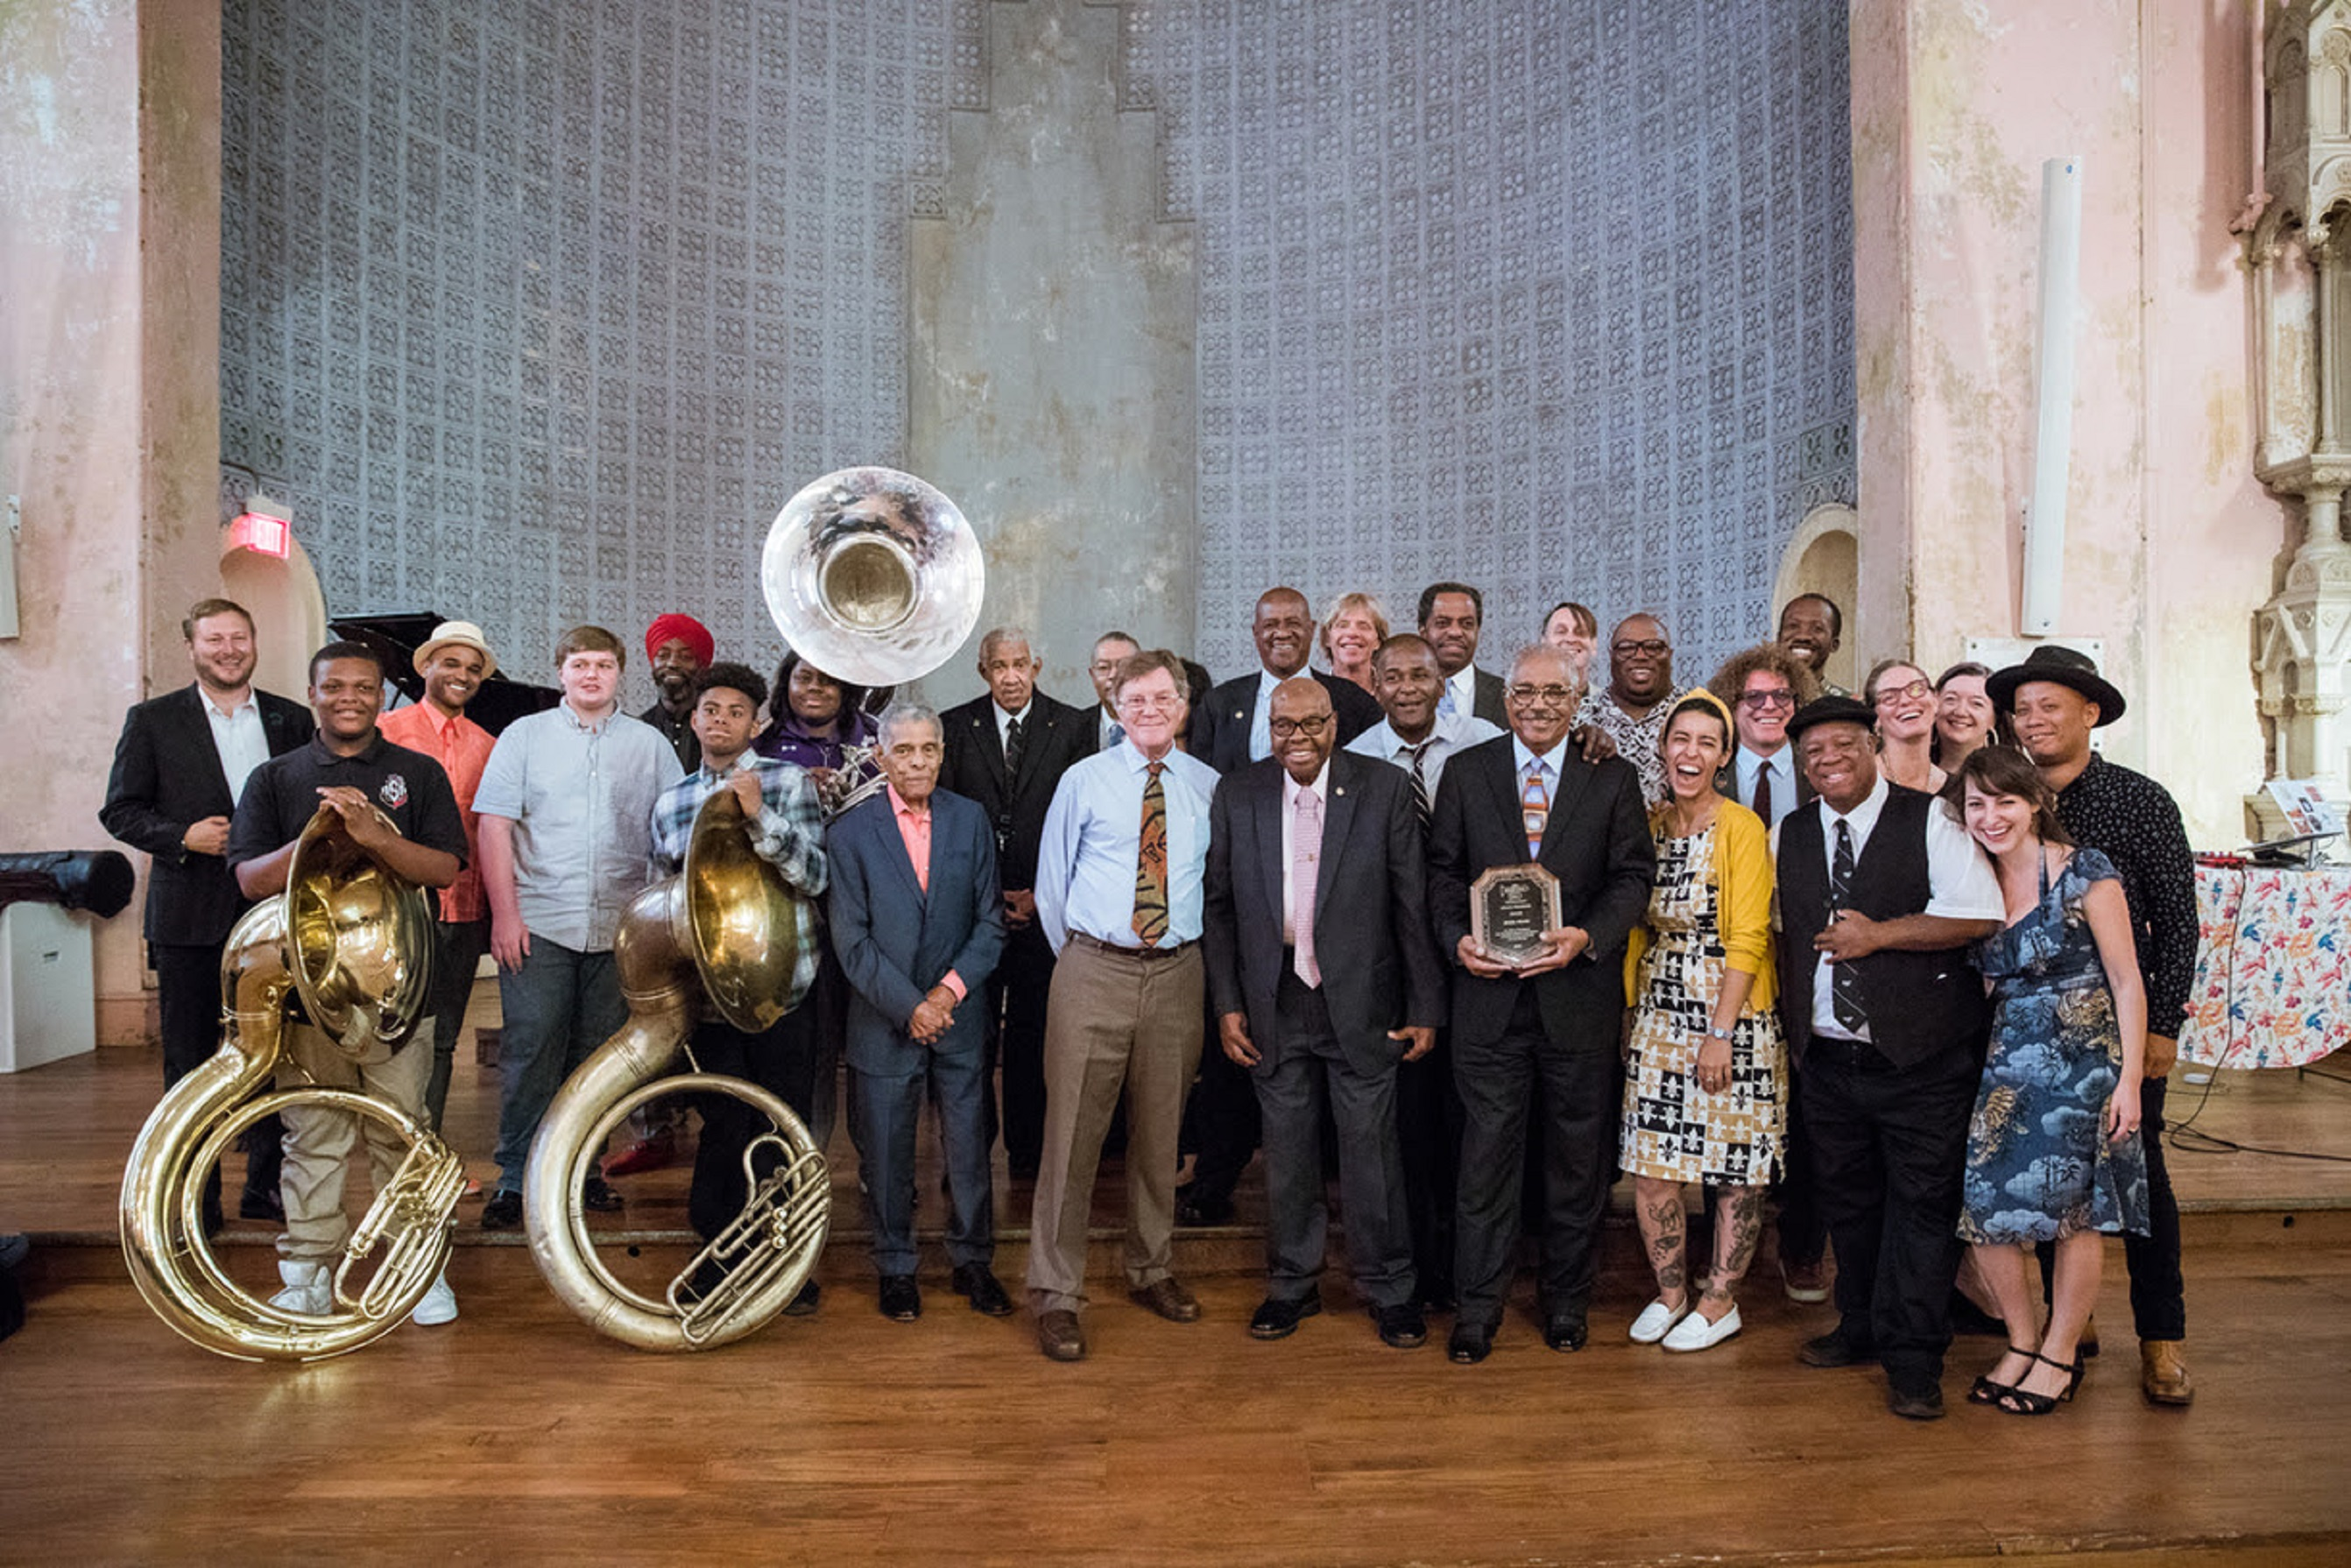 Help support the Preservation Hall Musical Collective